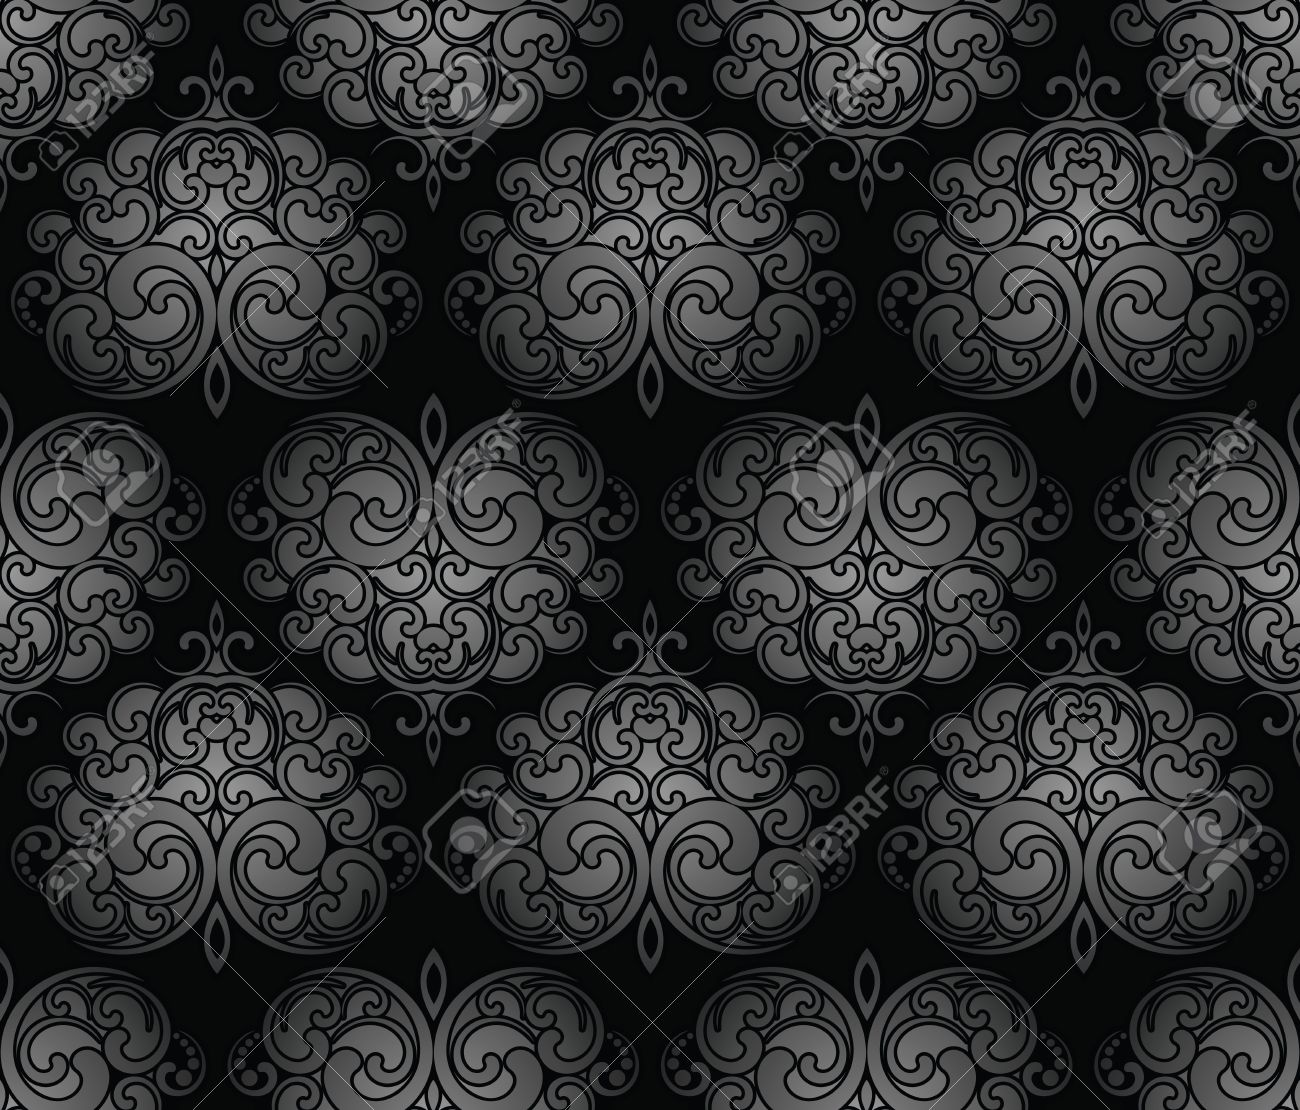 Seamless Black Royal Damask Wallpaper Stock Vector